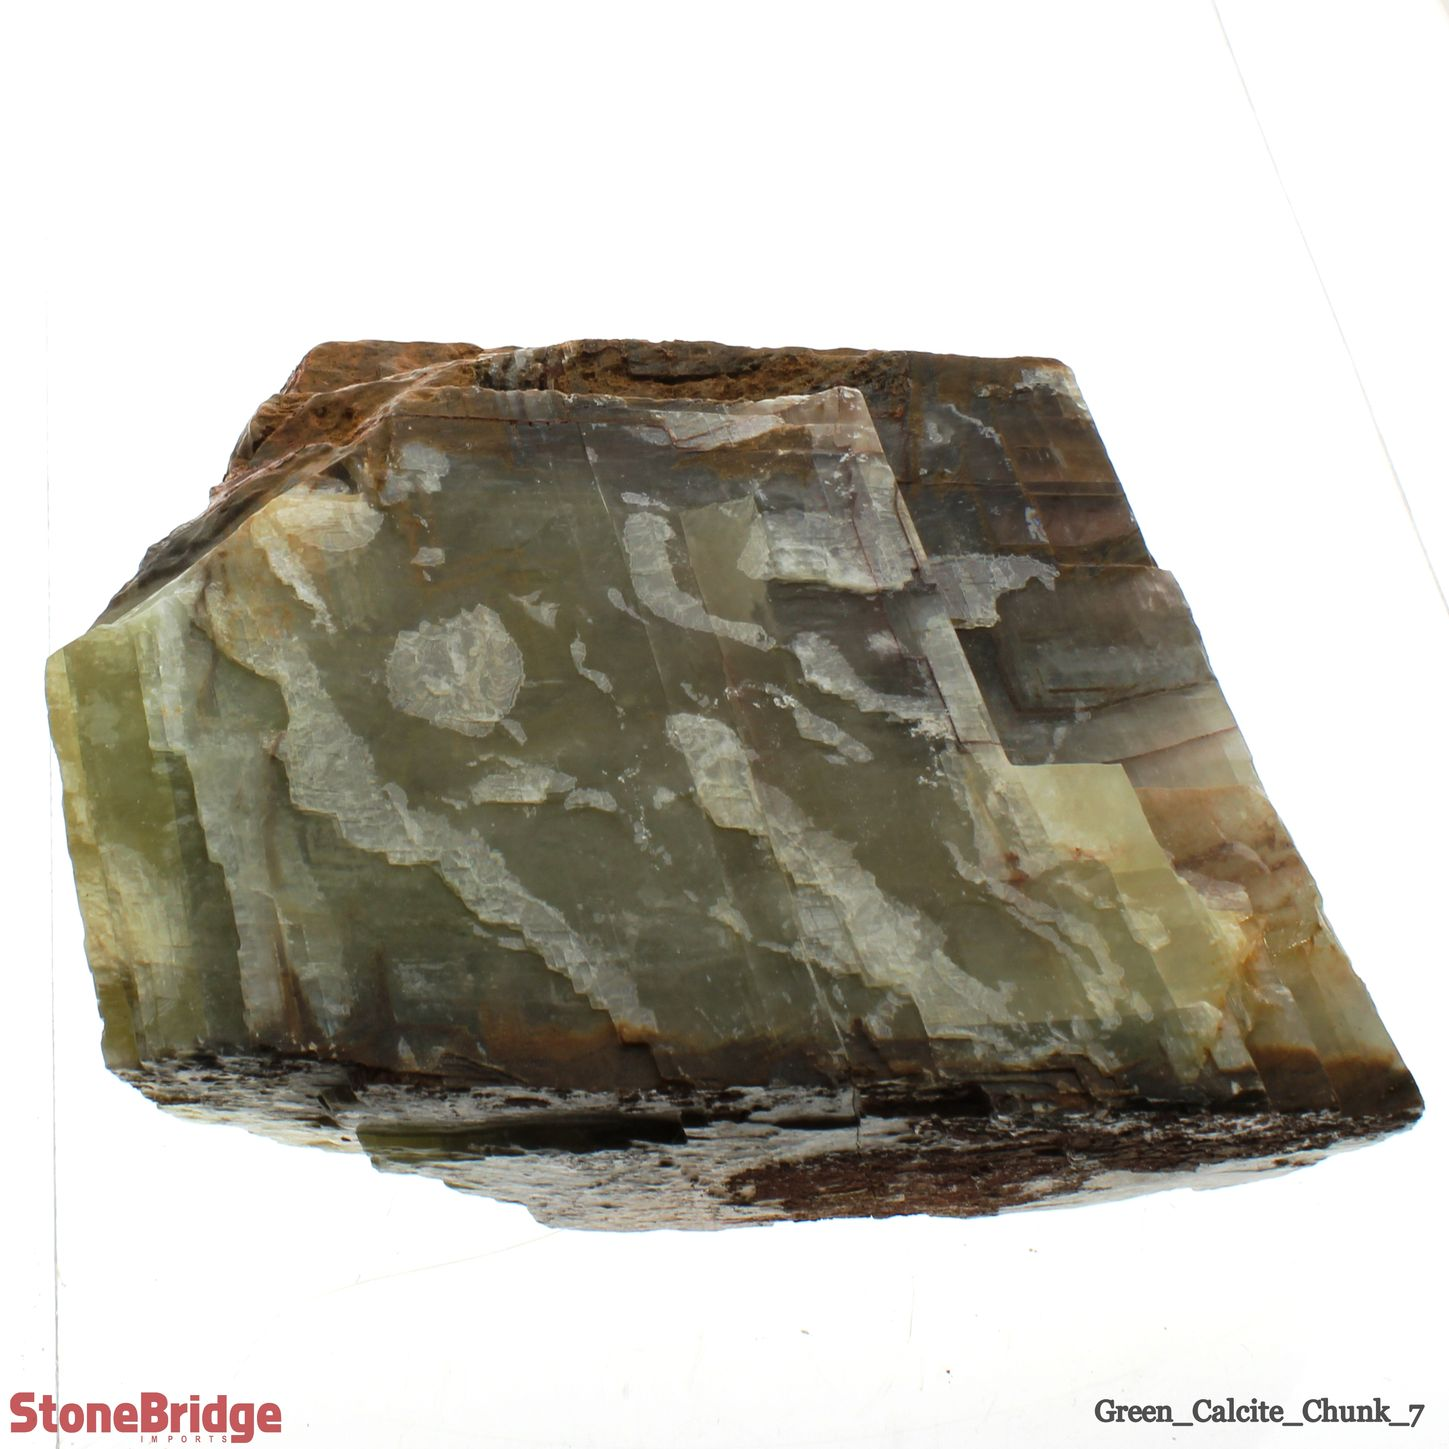 Green Calcite Chunk - Size #7 - 10kg to 15kg